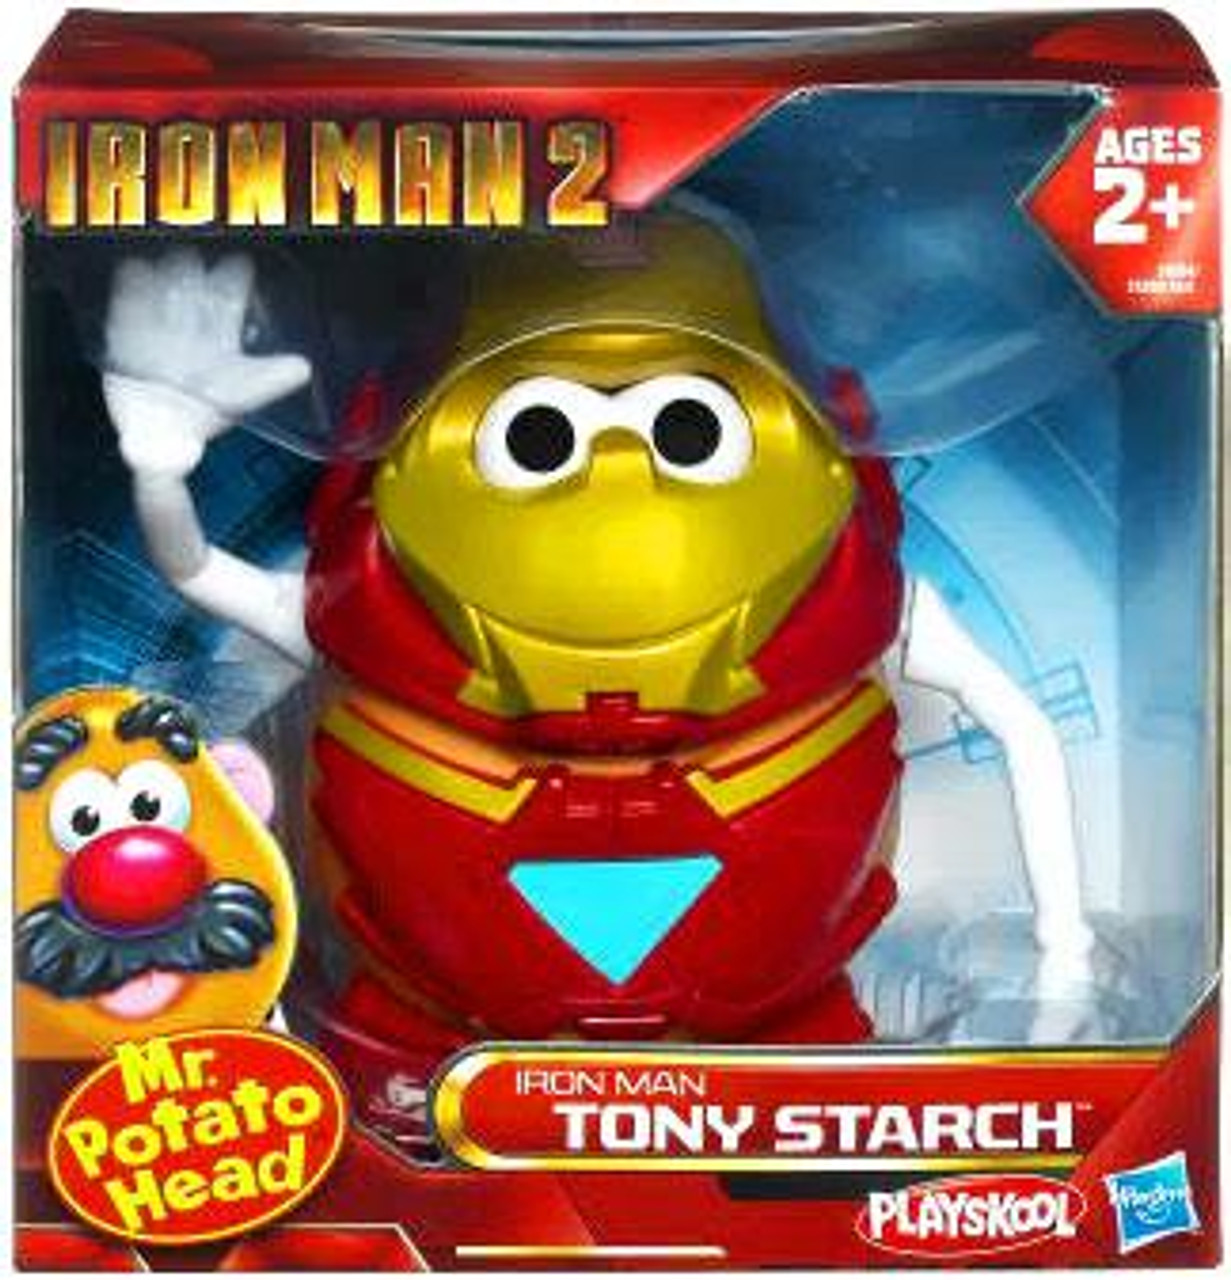 Iron Man 2 Iron Man Tony Starch Mr. Potato Head